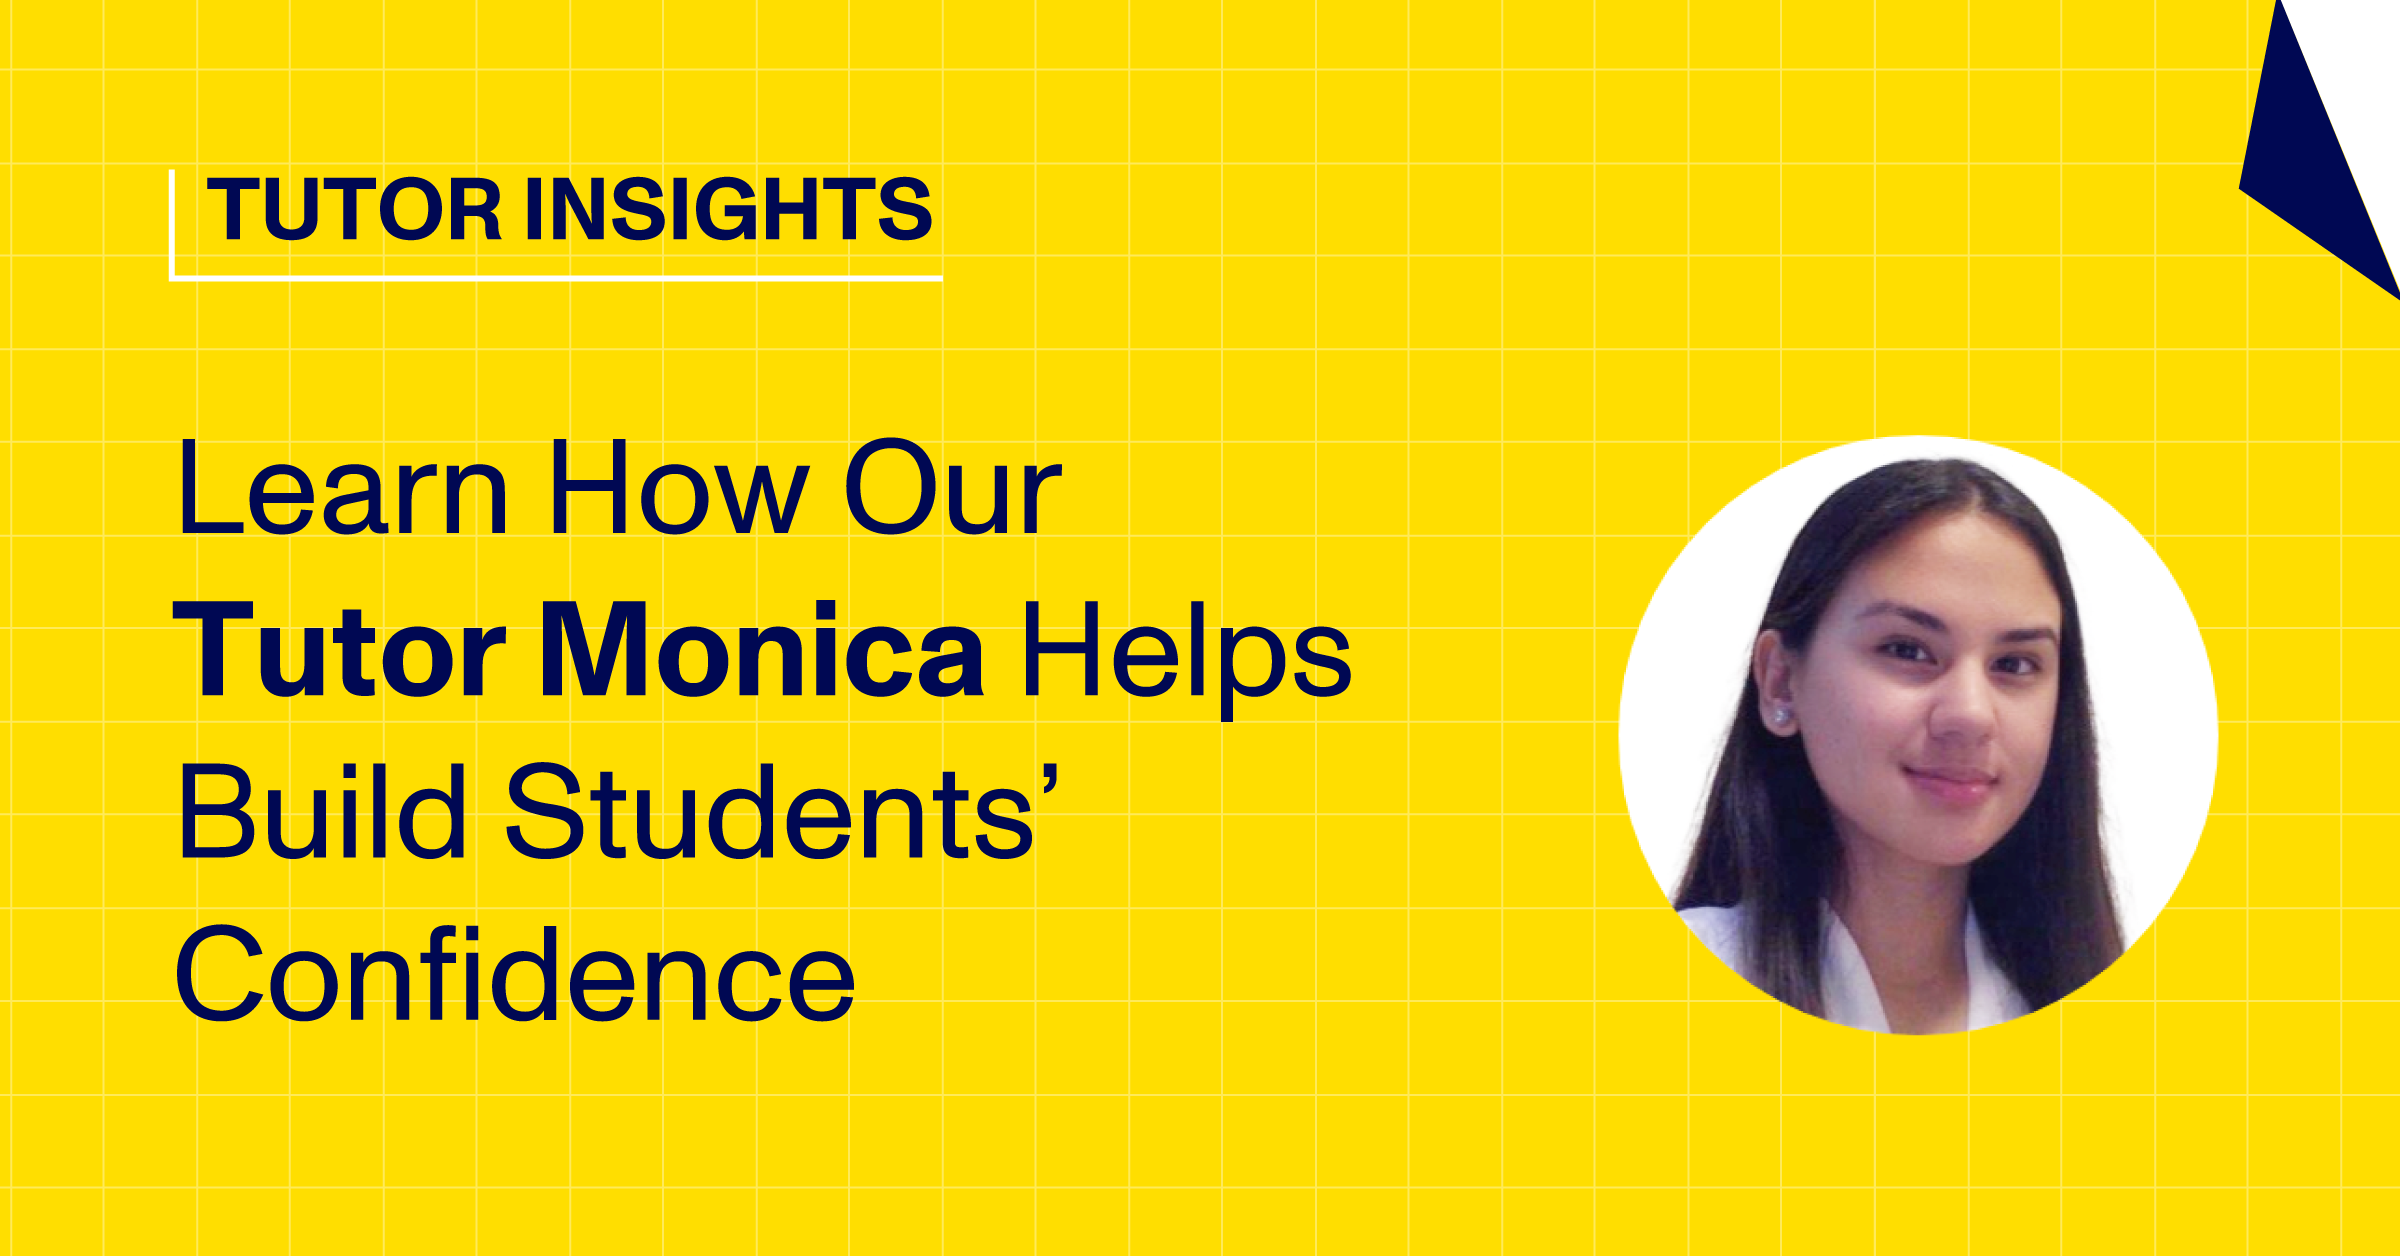 Learn How Our Tutor Monica Helps Build Students' Confidence